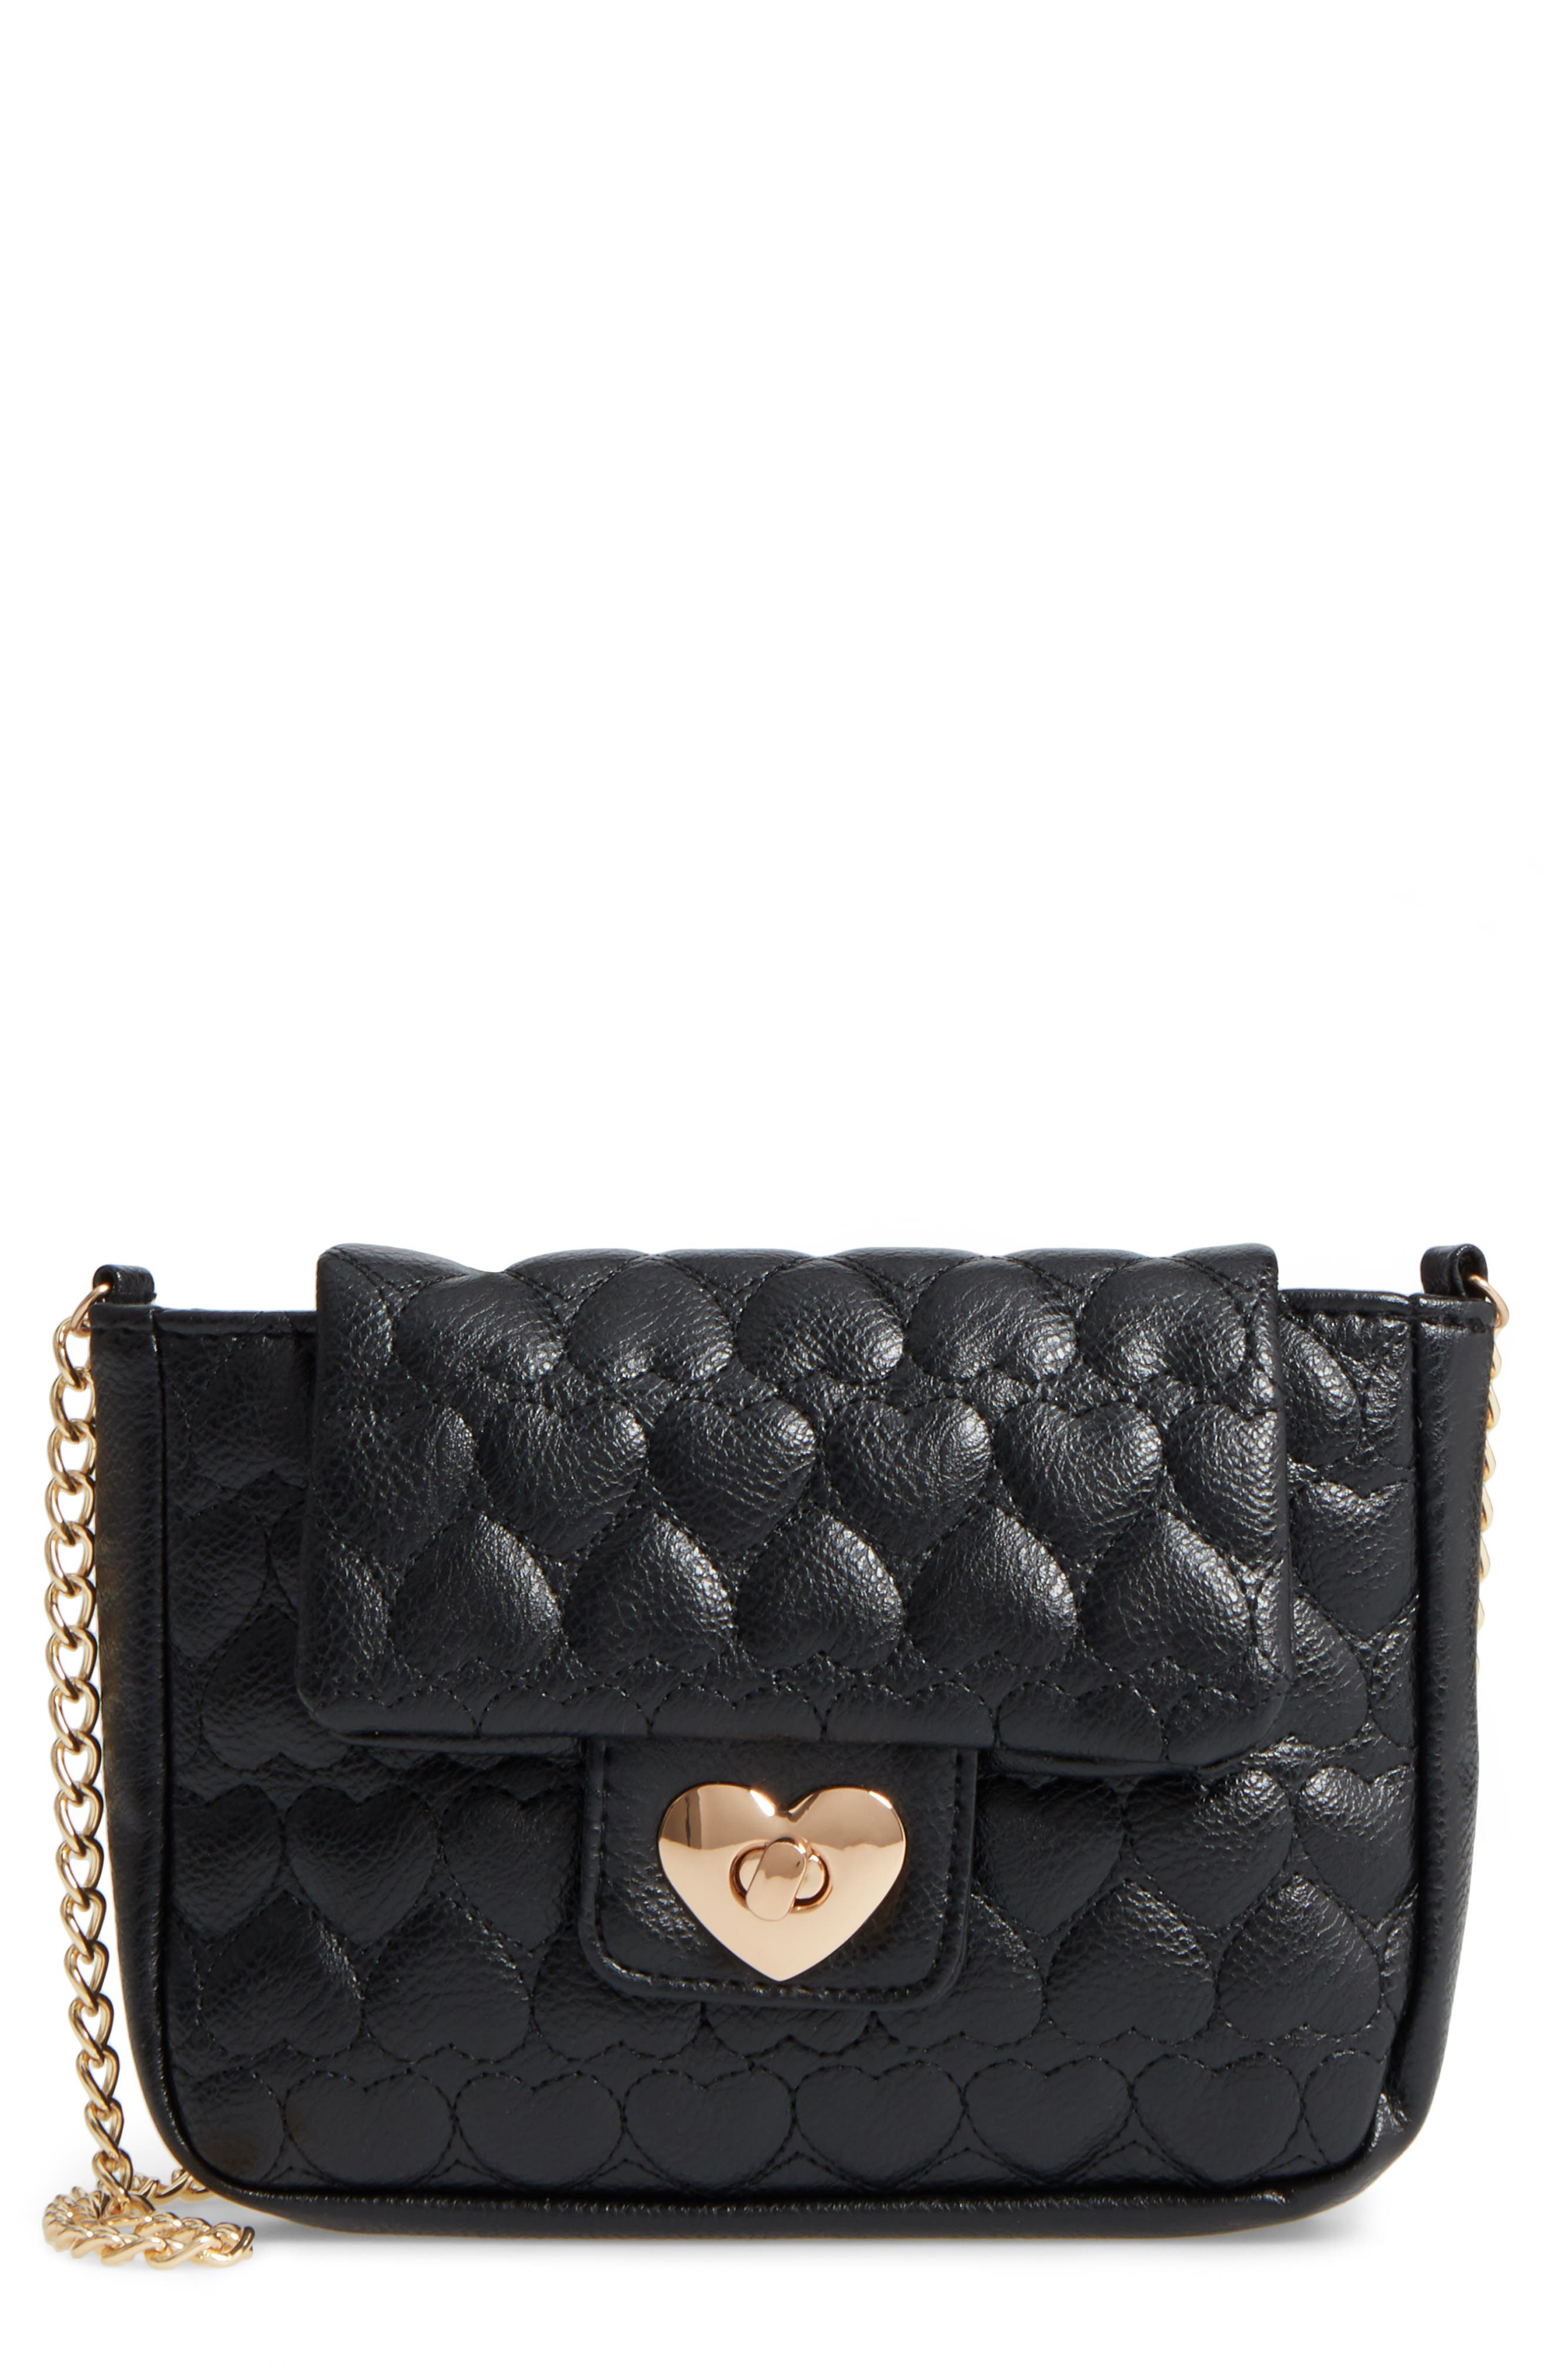 CAPELLI OF NEW YORK Quilted Heart Shoulder Bag